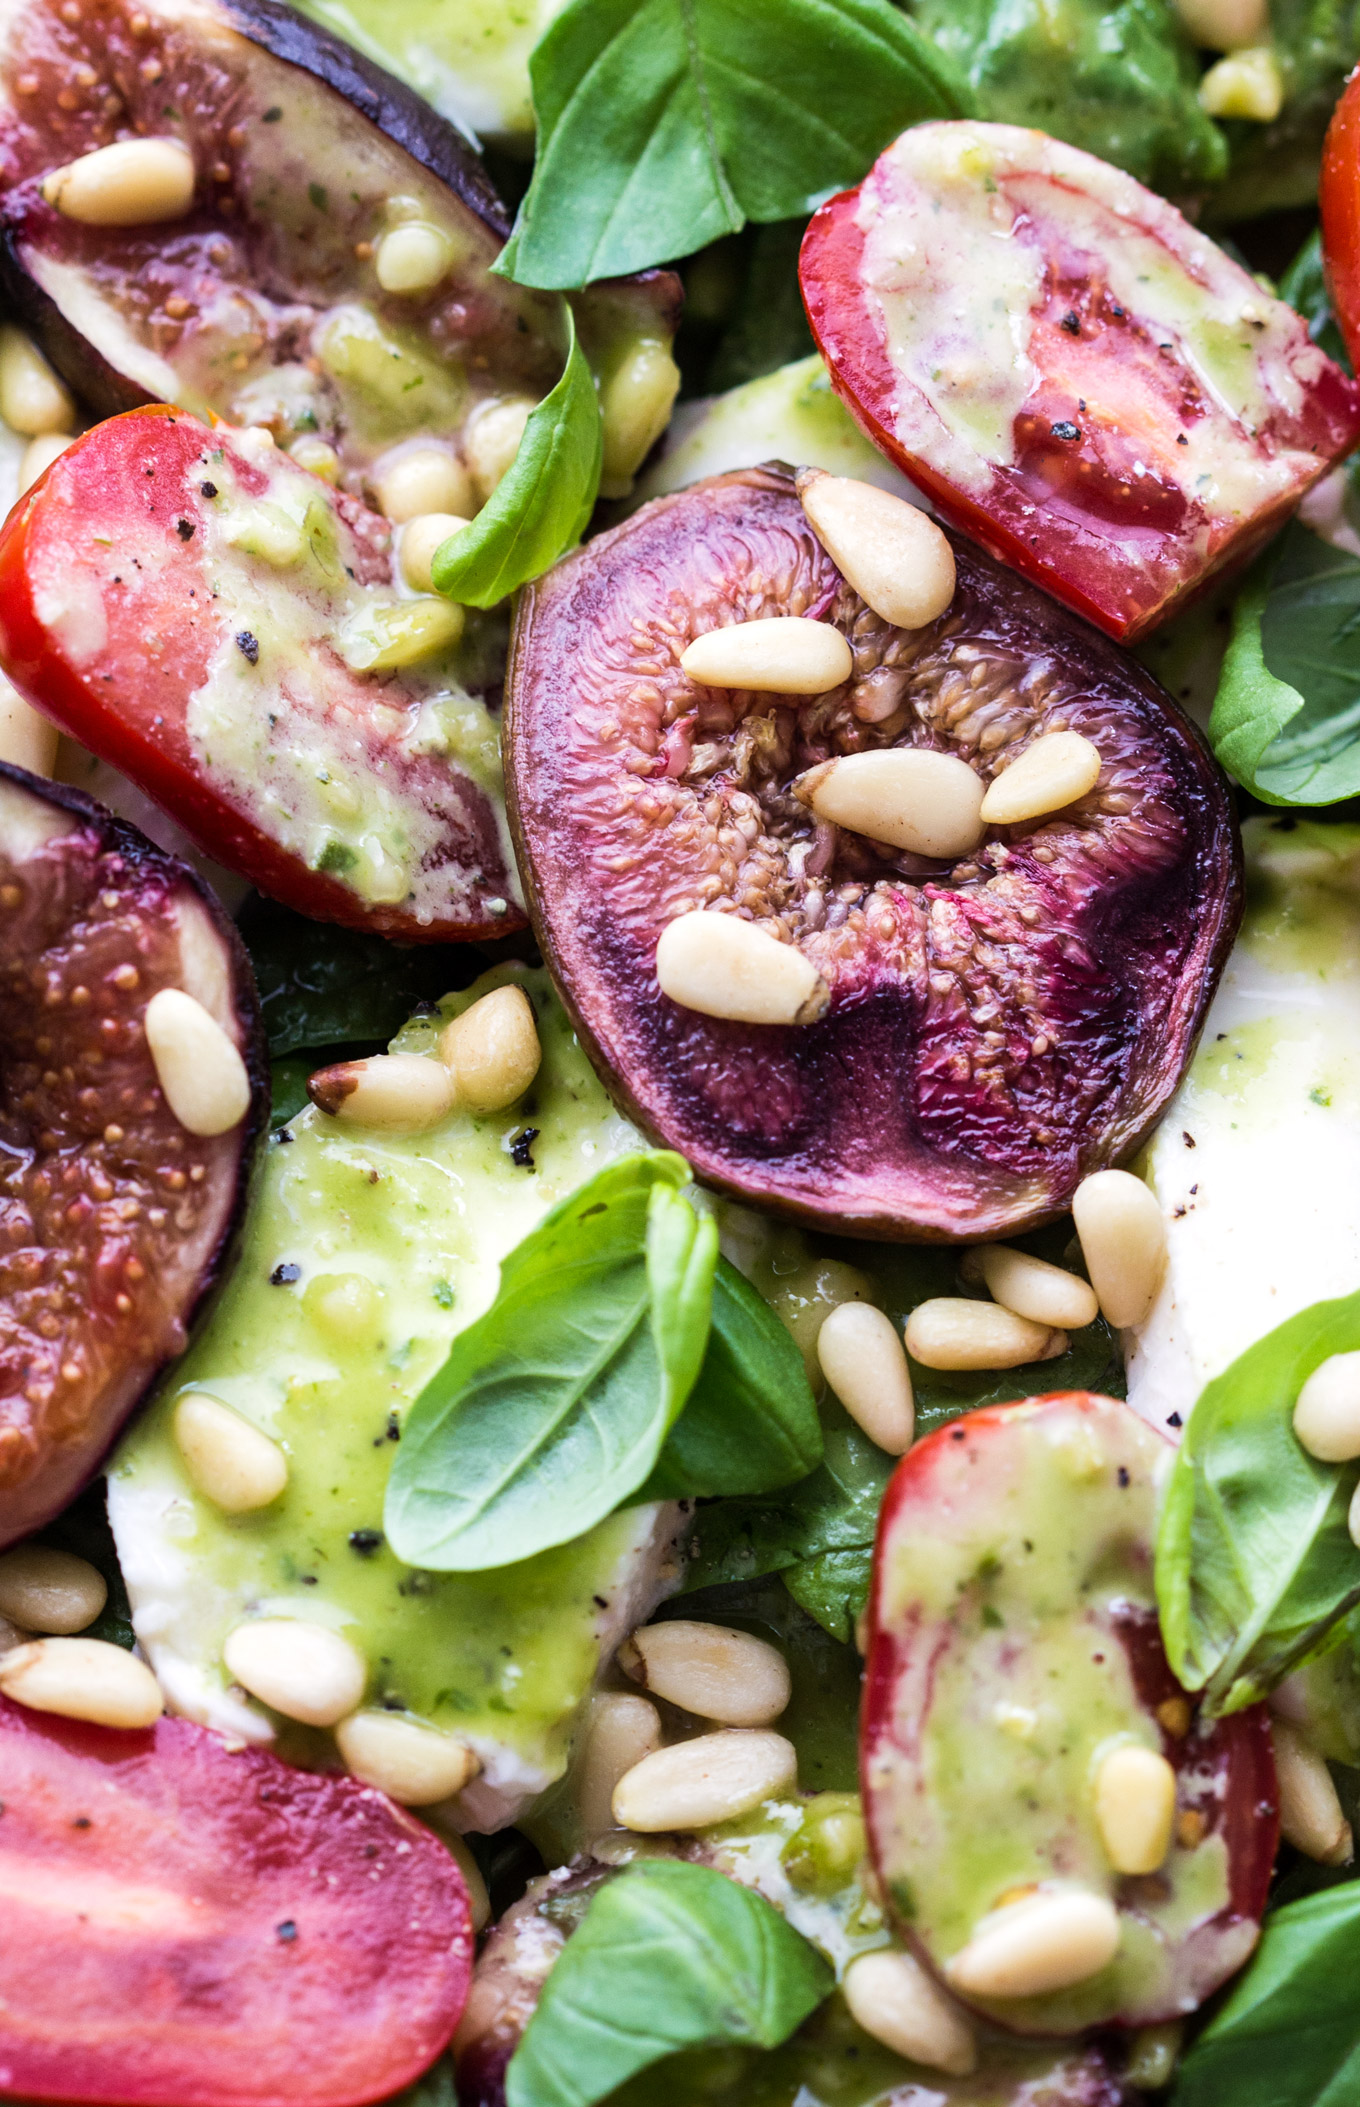 Baked Figs Caprese Salad with Honey Confit Garlic Dressing is an amazing, quick and easy main course recipe with beautiful dressing.